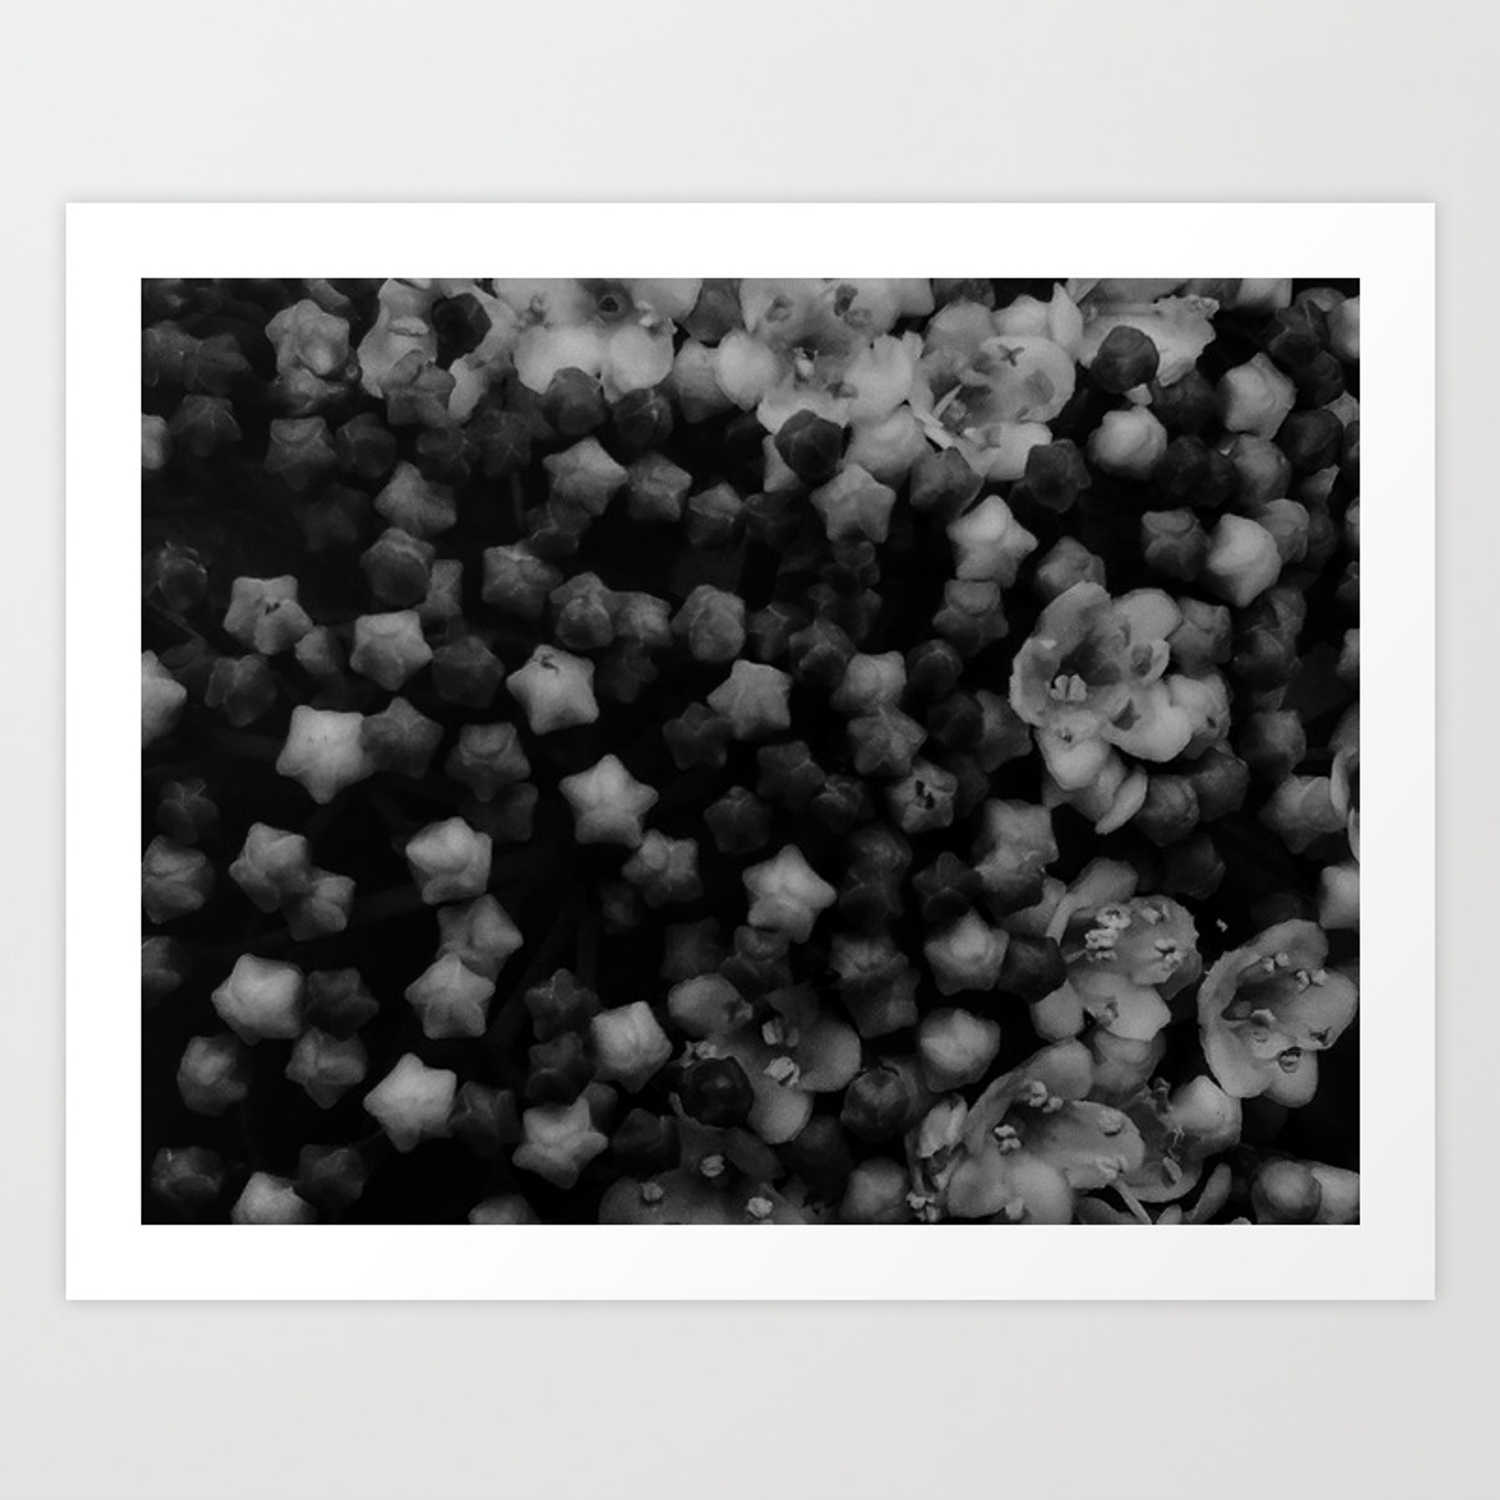 Floral stars black and white high contrast art print